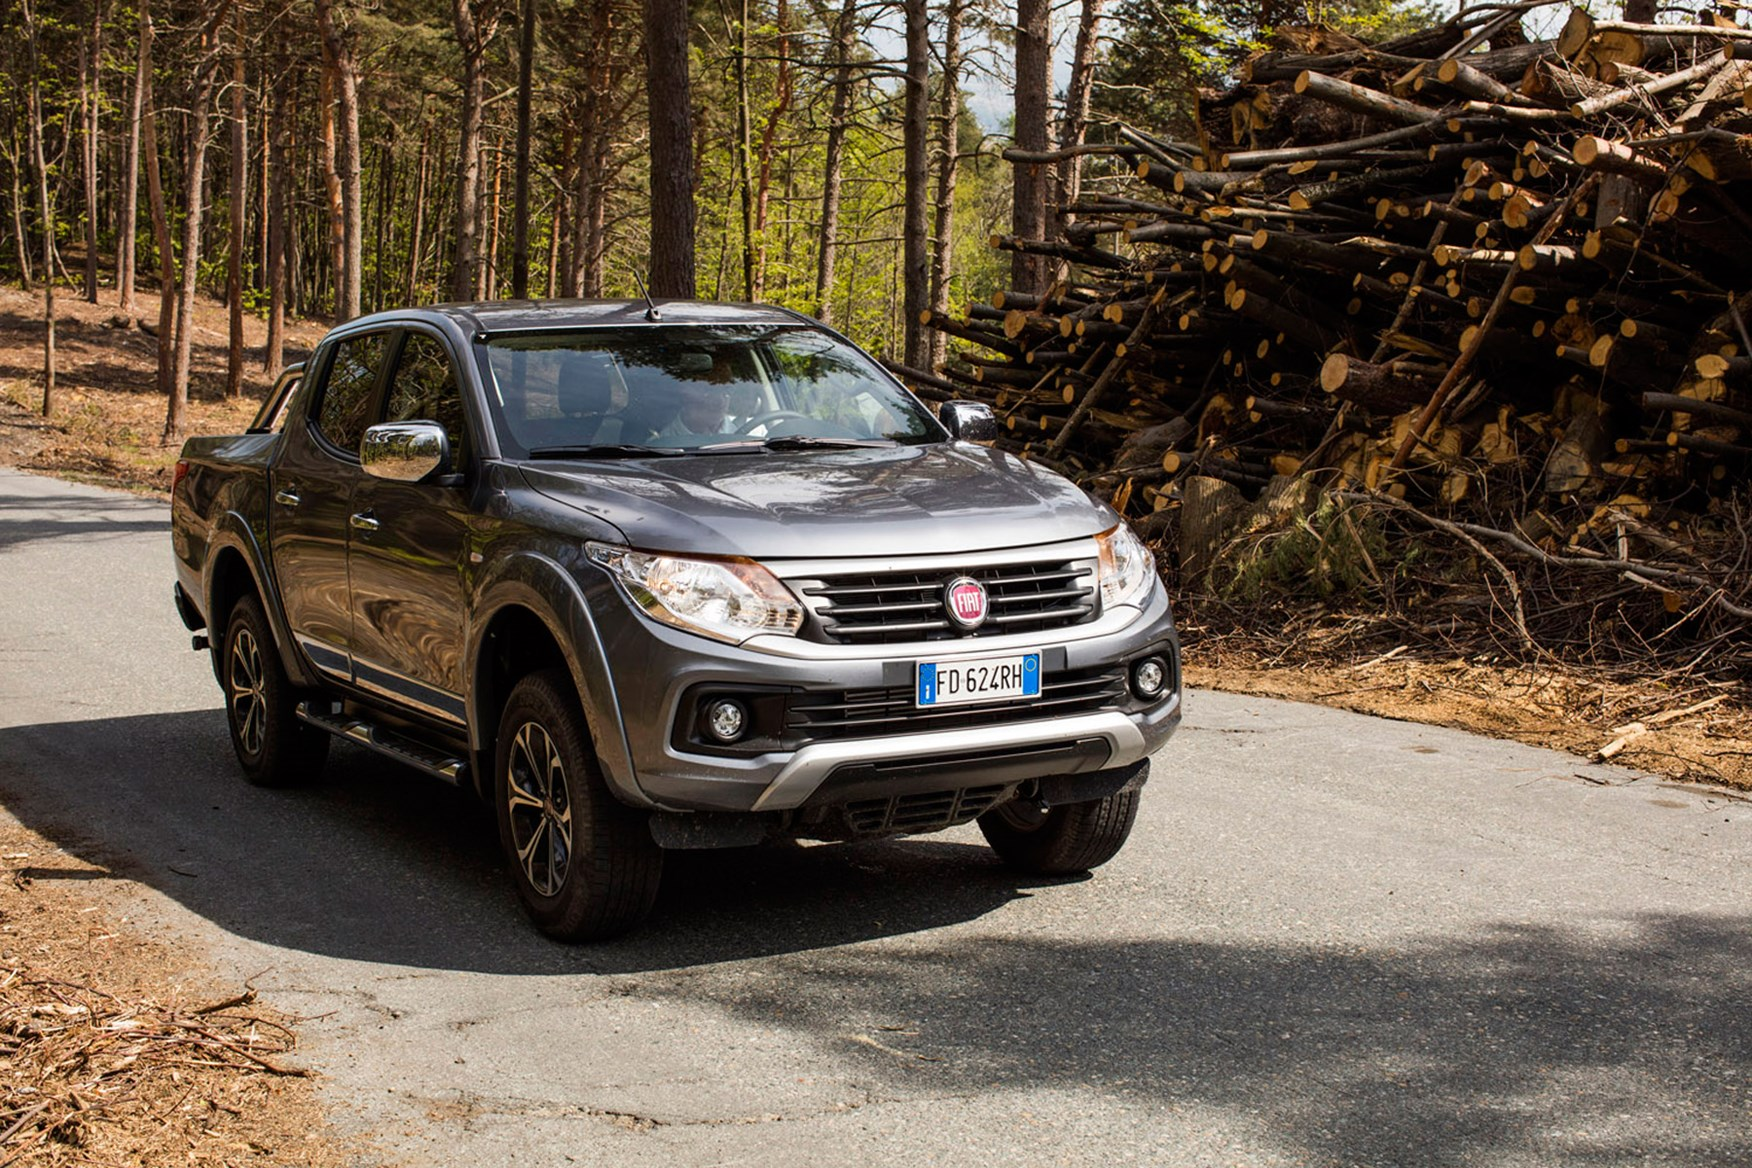 Fiat Fullback full review on Parkers Vans - exterior